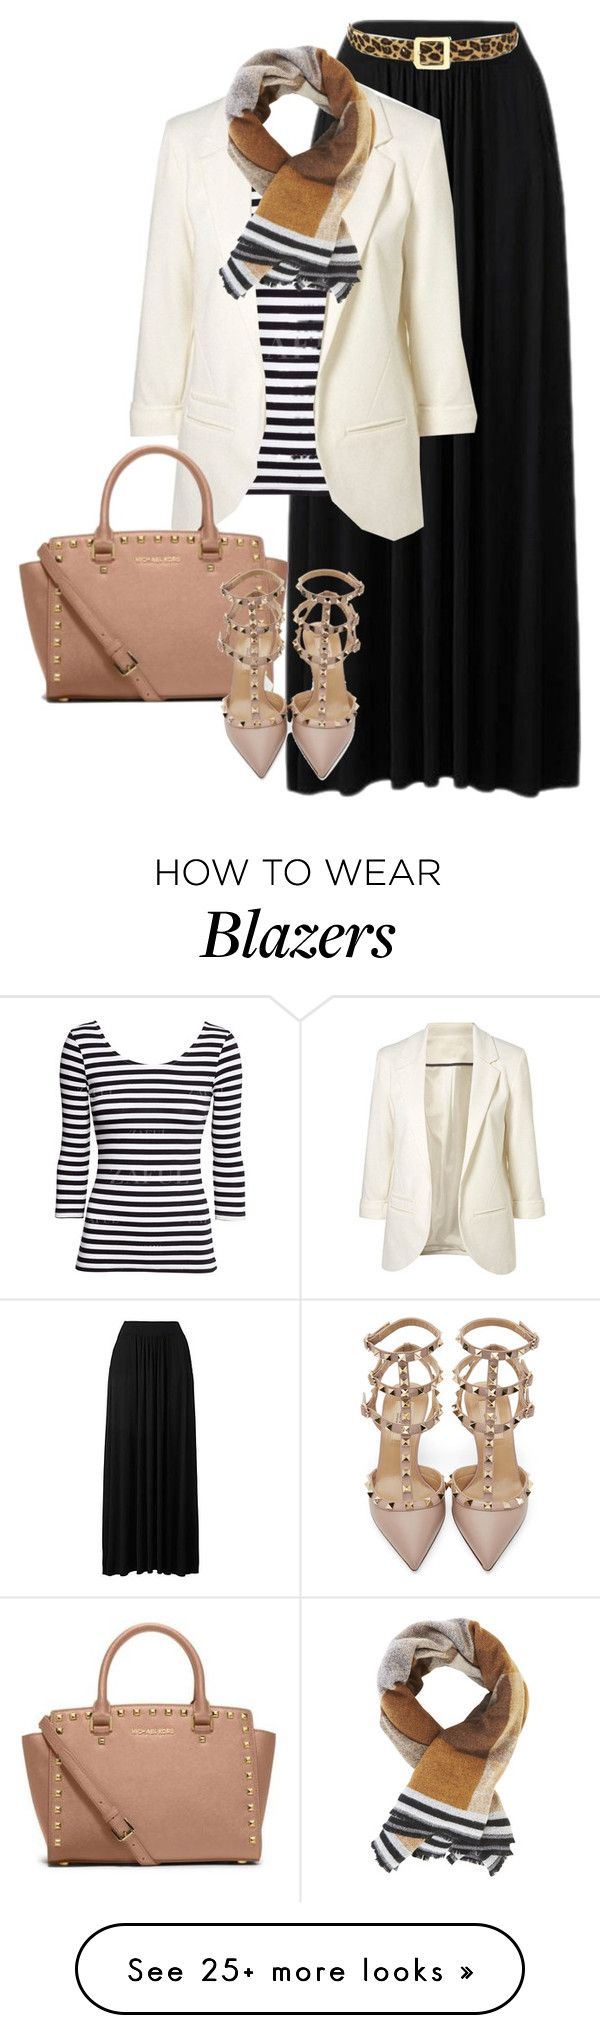 """""""blazer and maxi"""" by candiceleanos on Polyvore featuring W.Kleinberg, BCBGMAXAZRIA, Michael Kors and Valentino"""